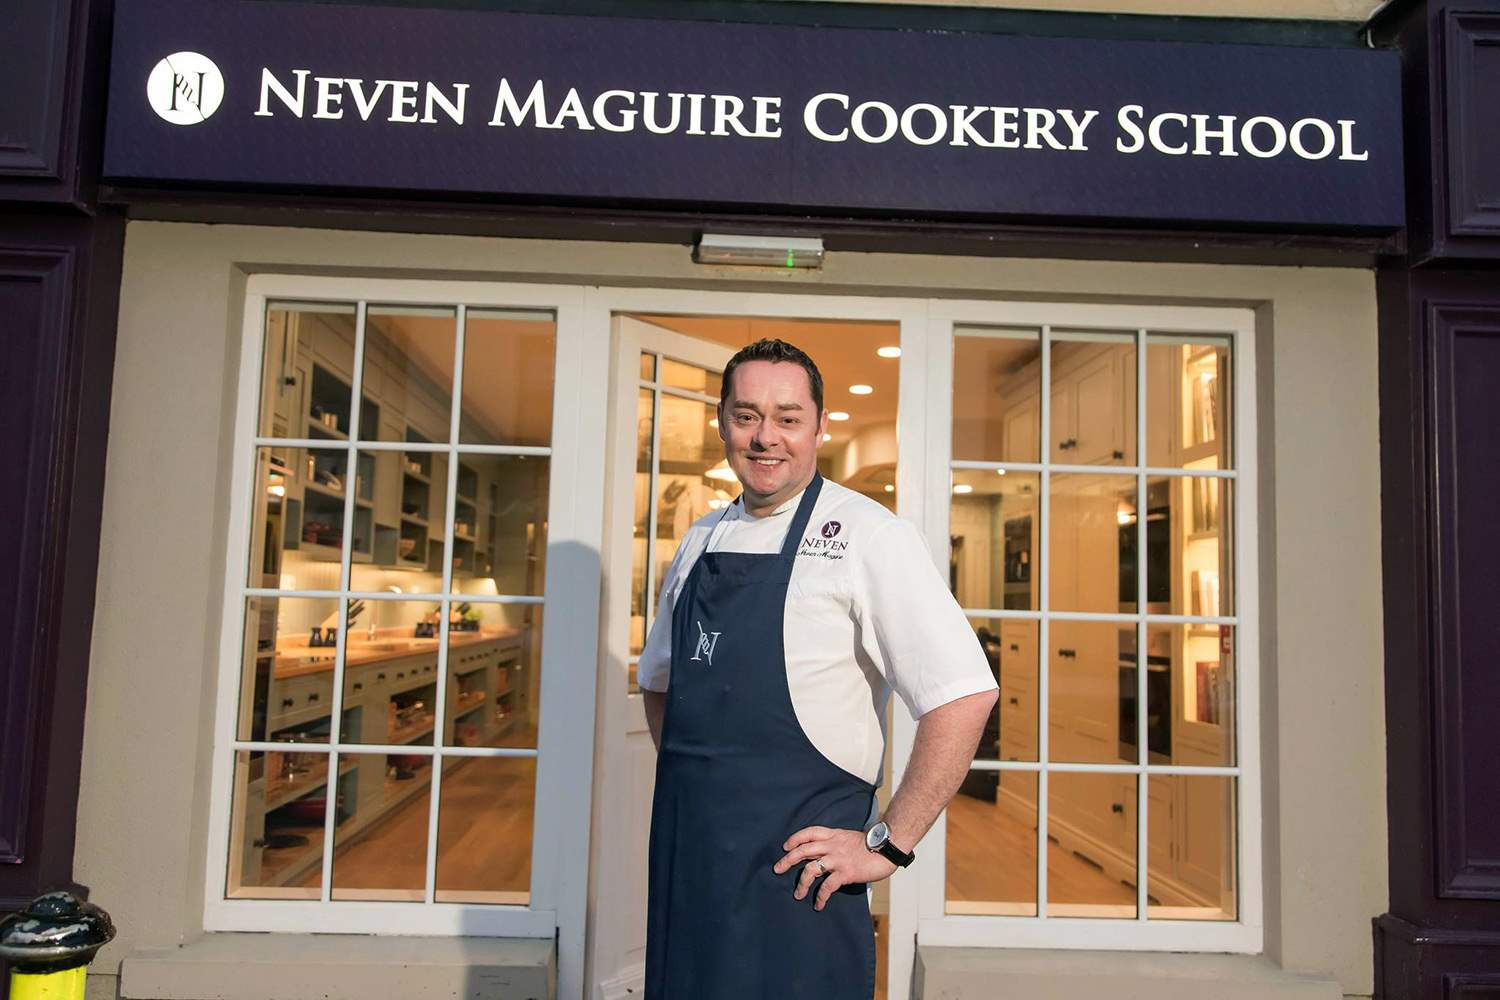 chefNeven Maguire